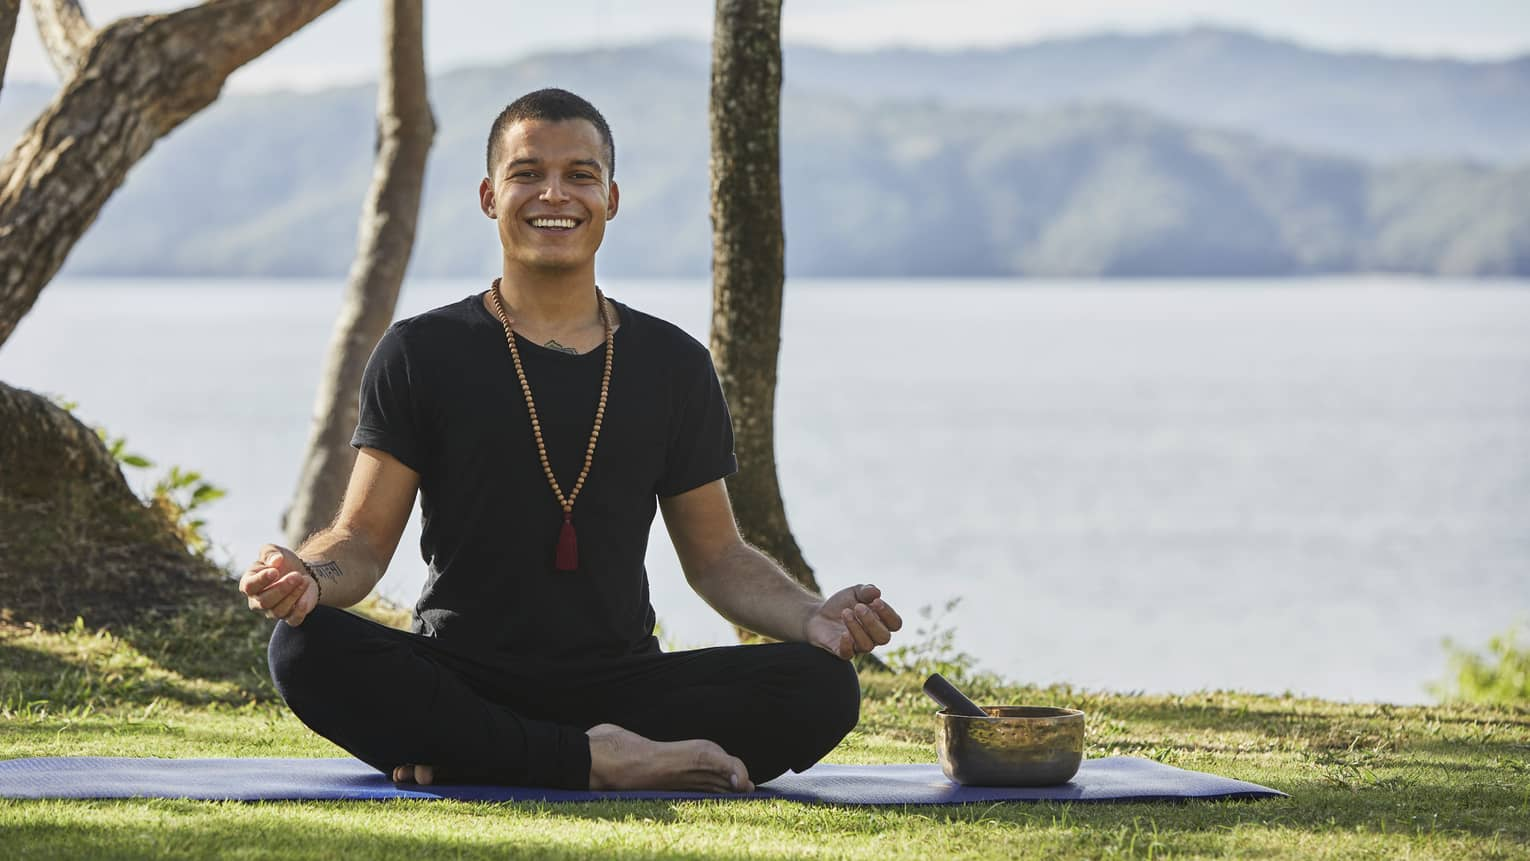 A yoga instructor smiles as he sits on a mat outside in front of a mountain range